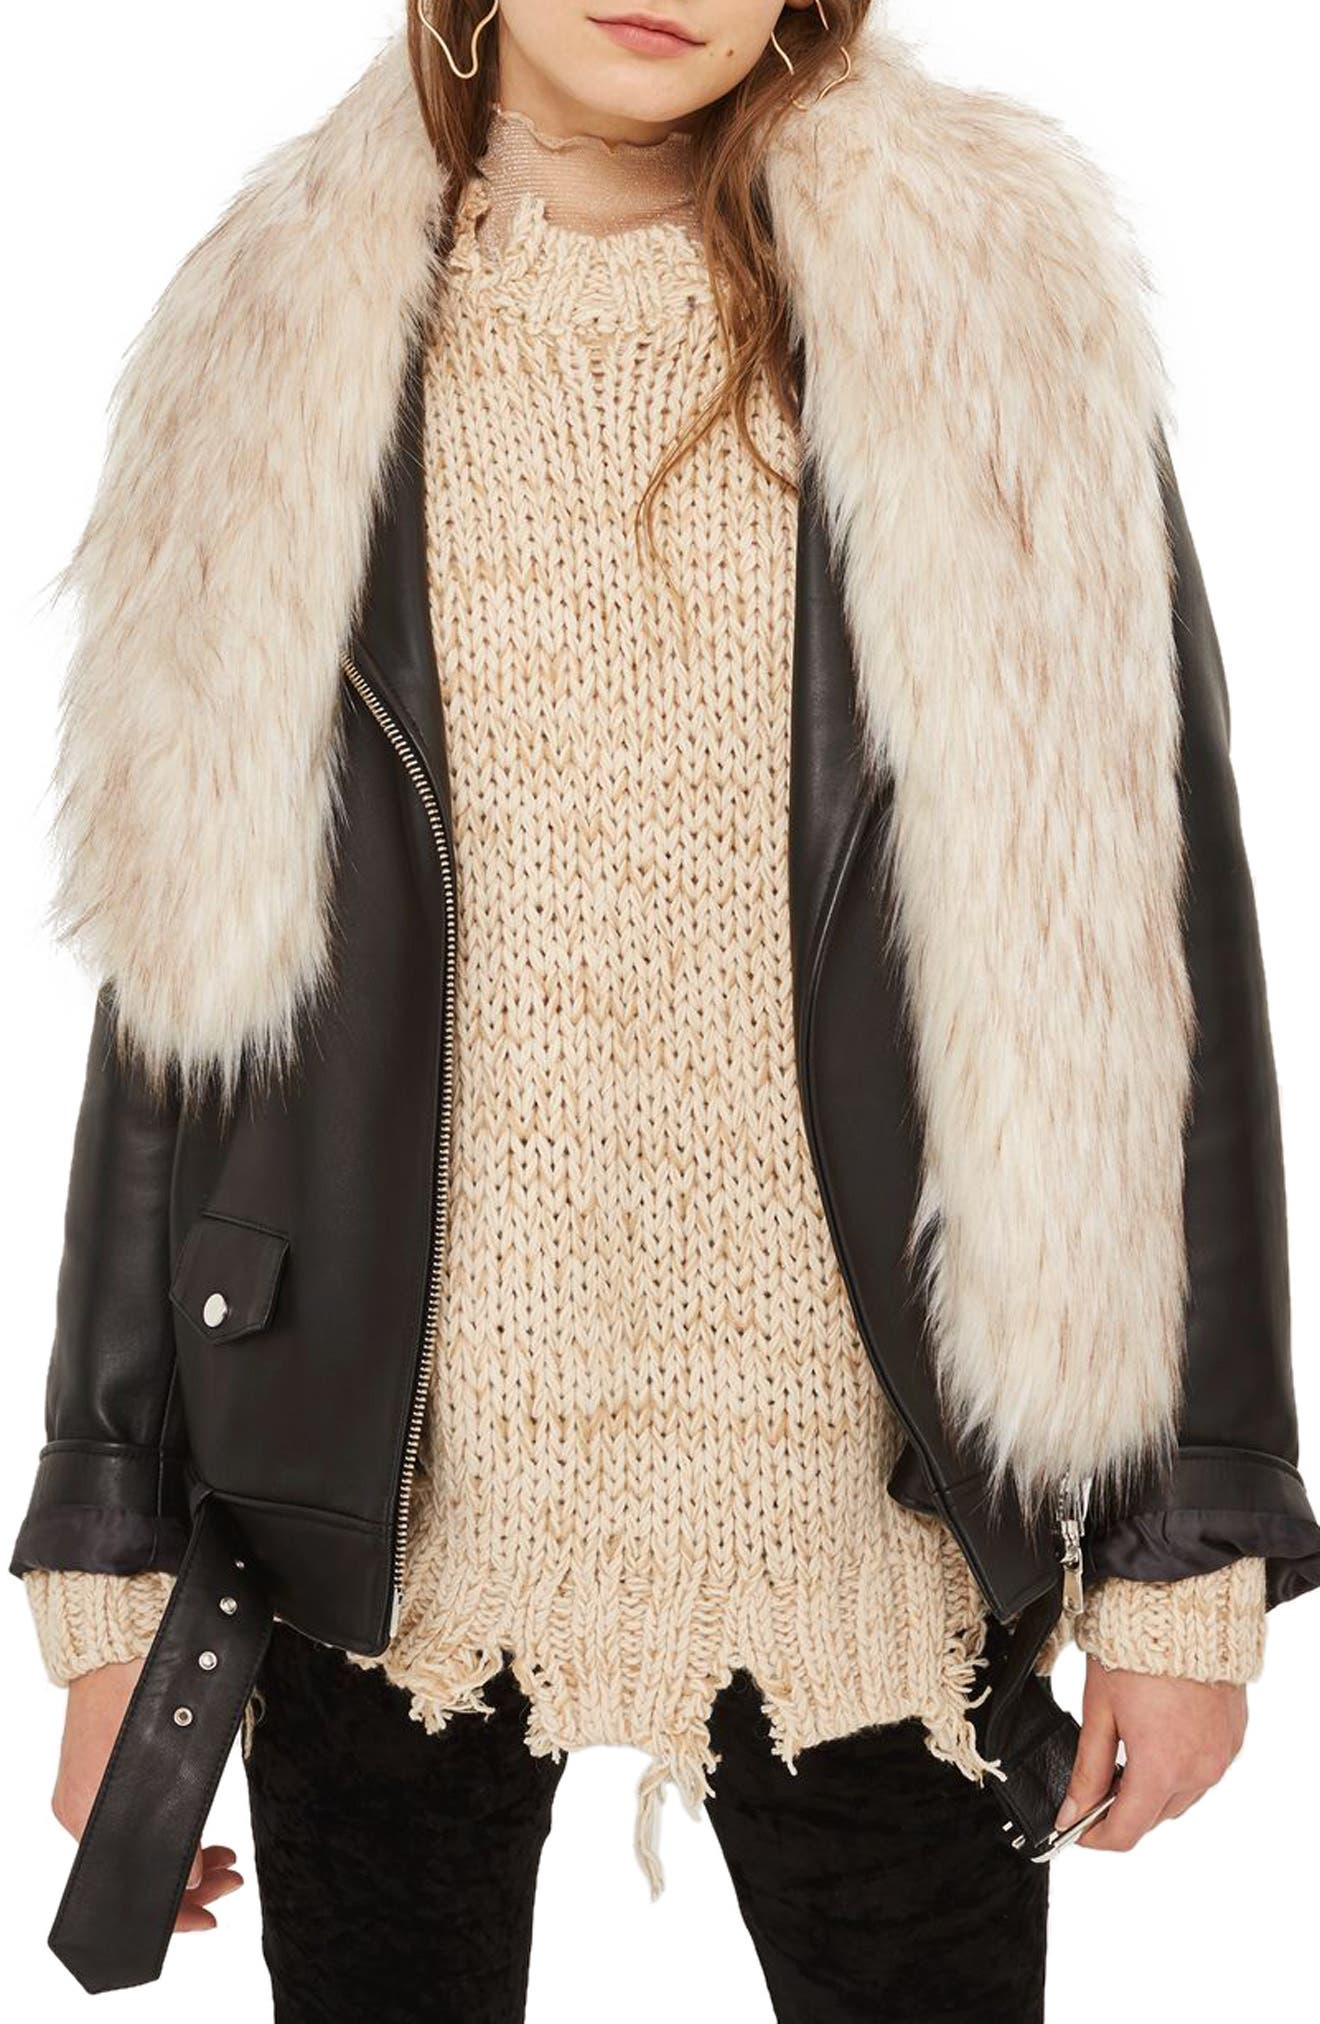 Alternate Image 1 Selected - Topshop Faux Fur Stole